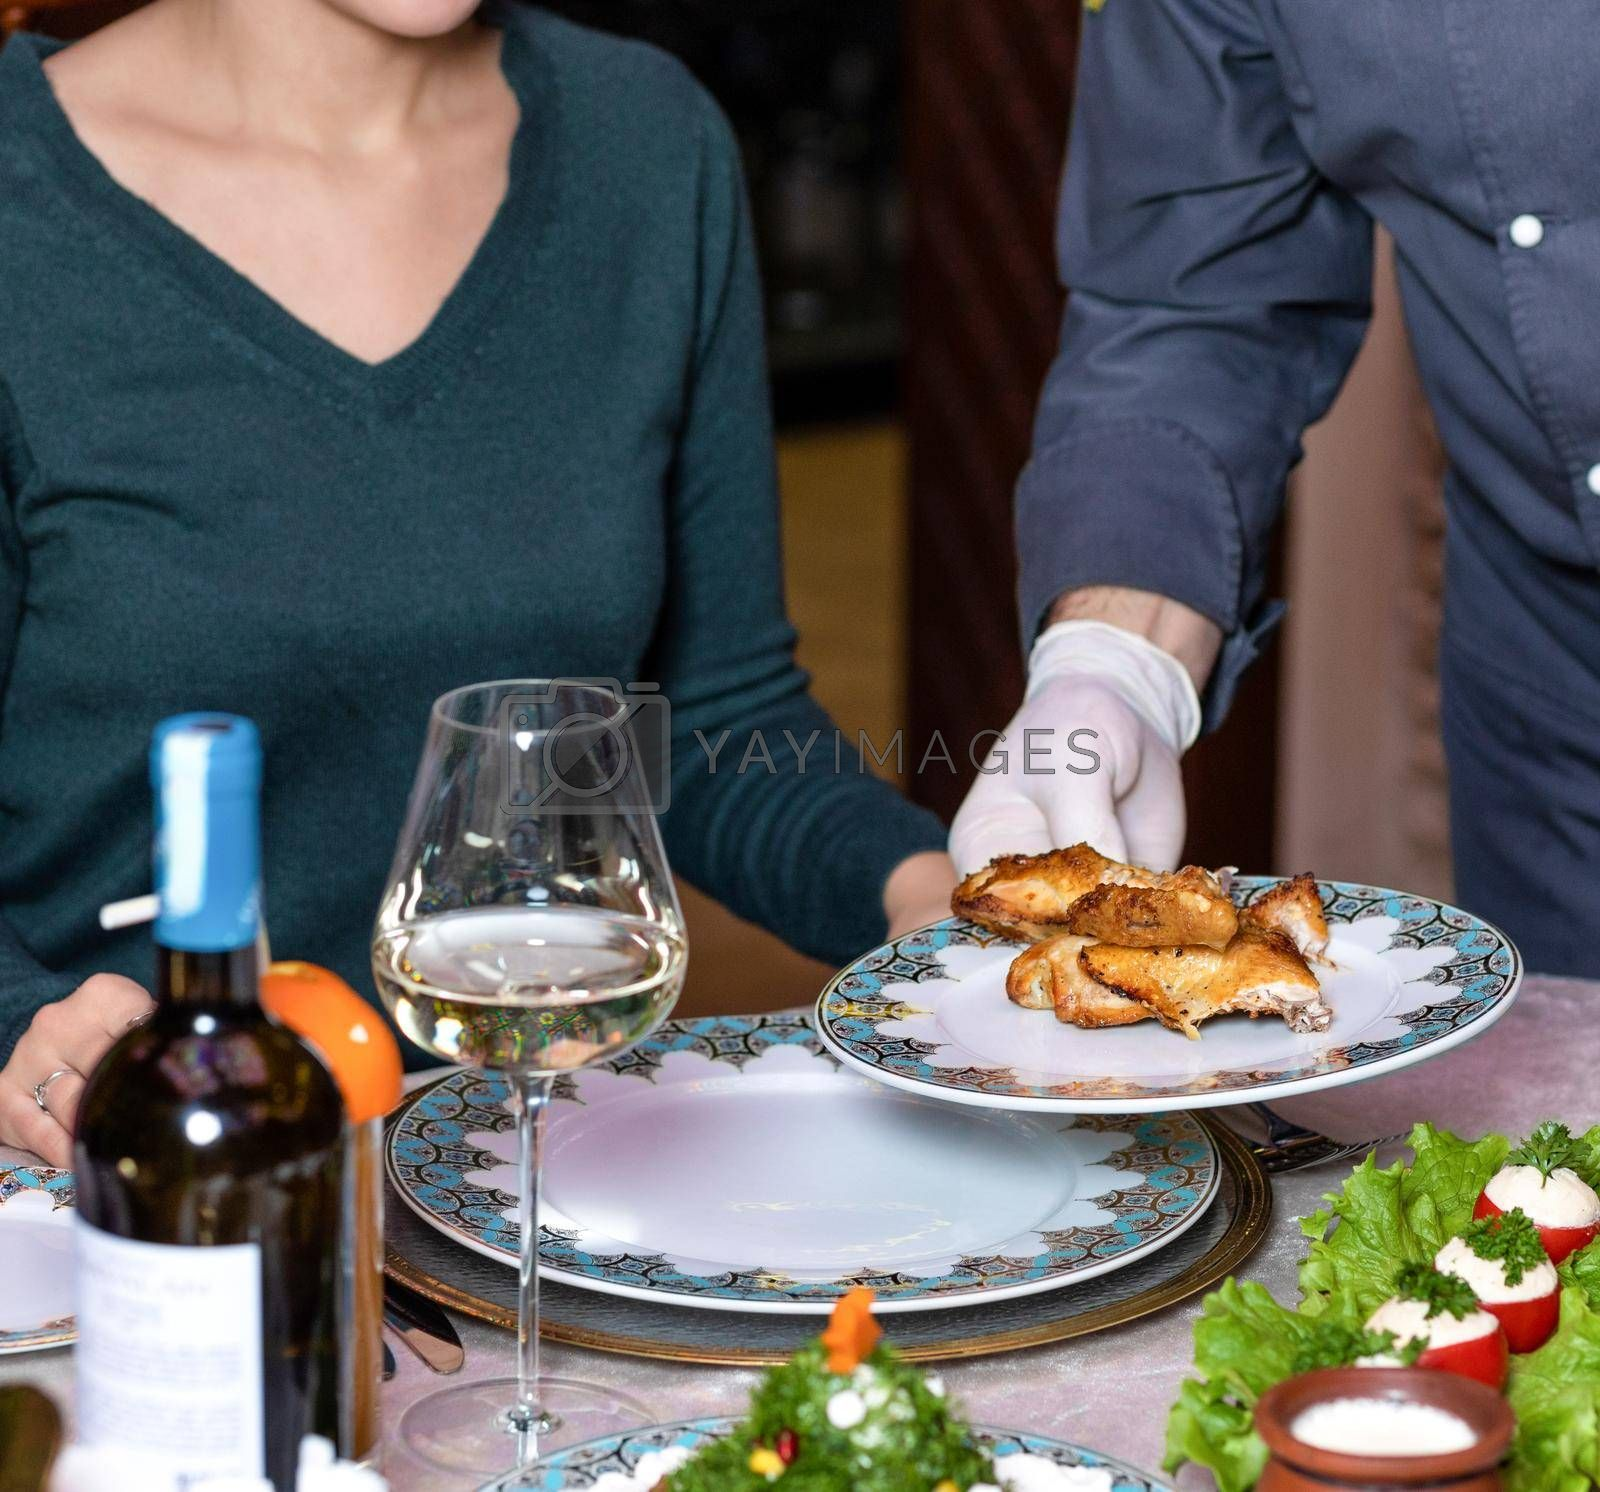 Waiter serving a chicken meat to the woman